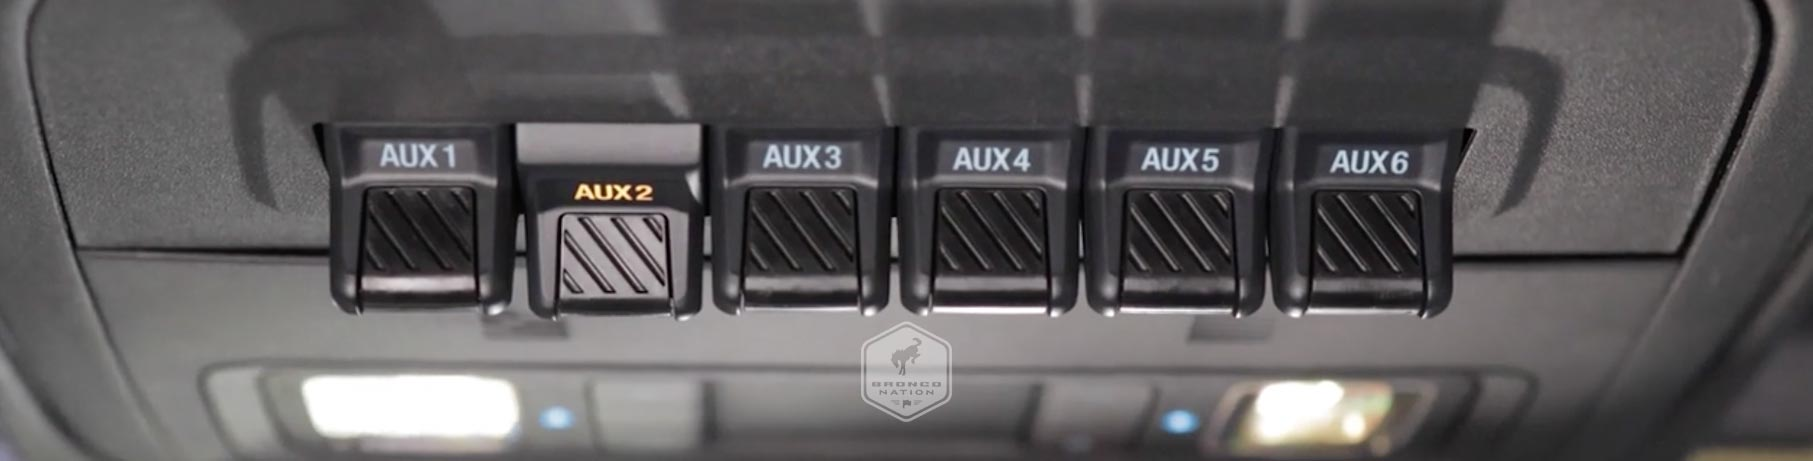 How to Use the Auxiliary Switches on your Bronco